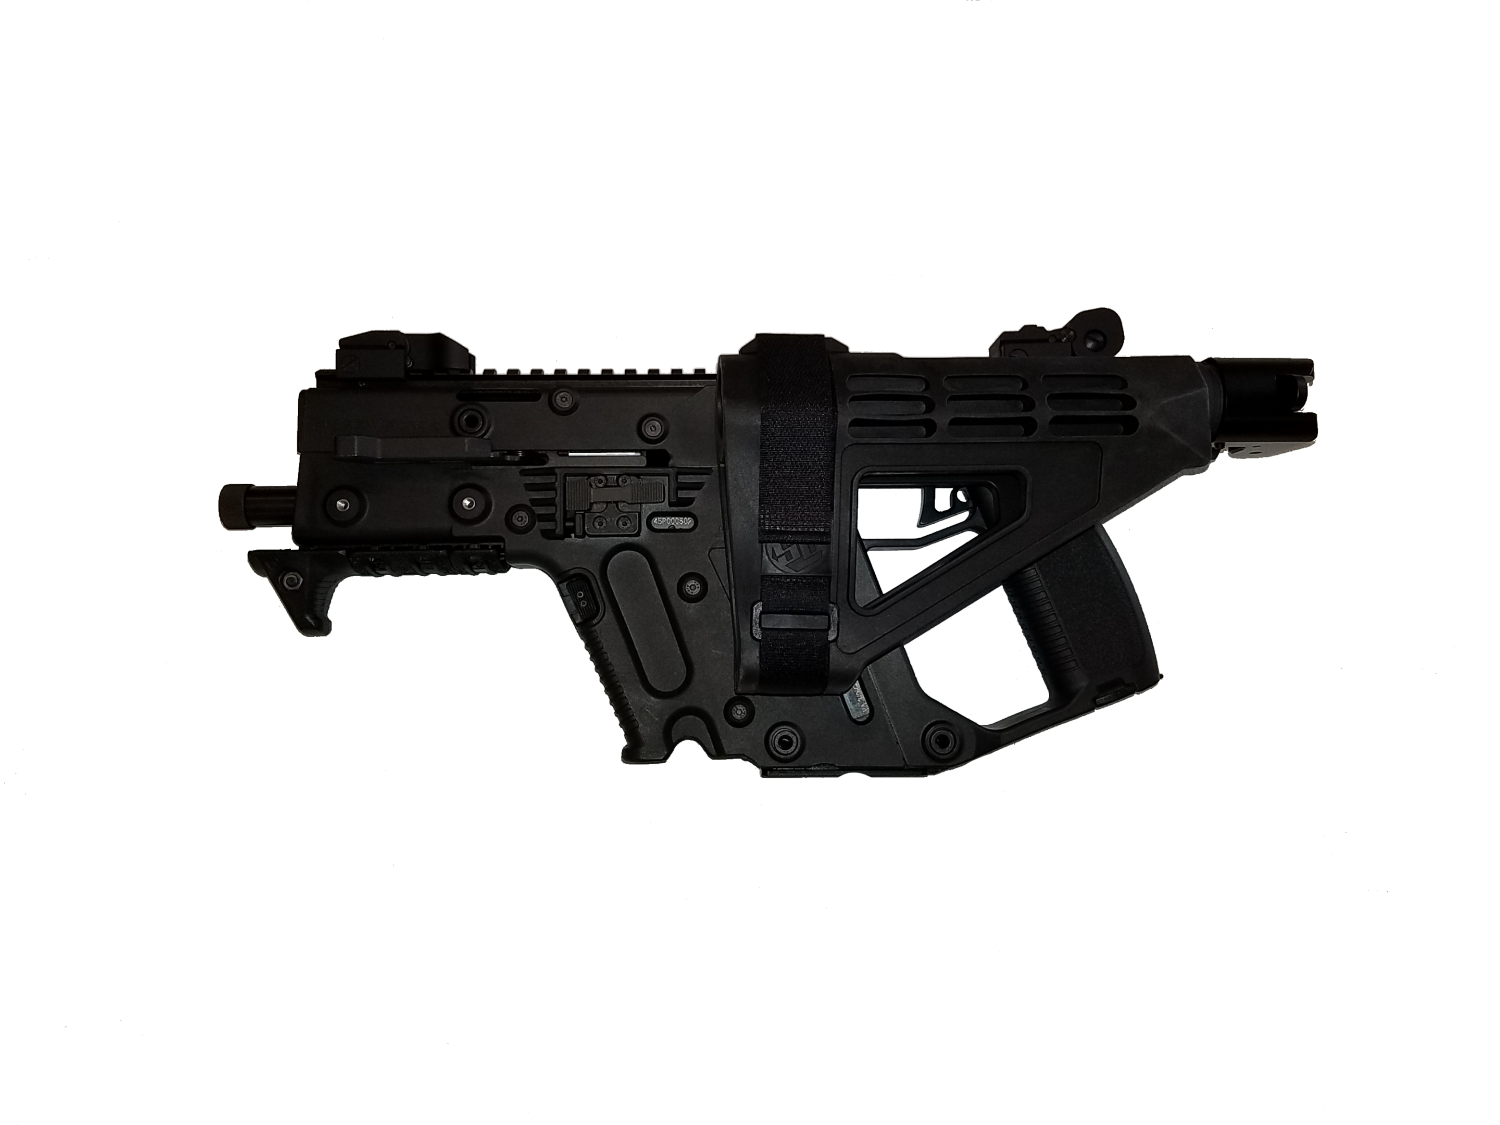 American company has recently. Built arms png graphic stock